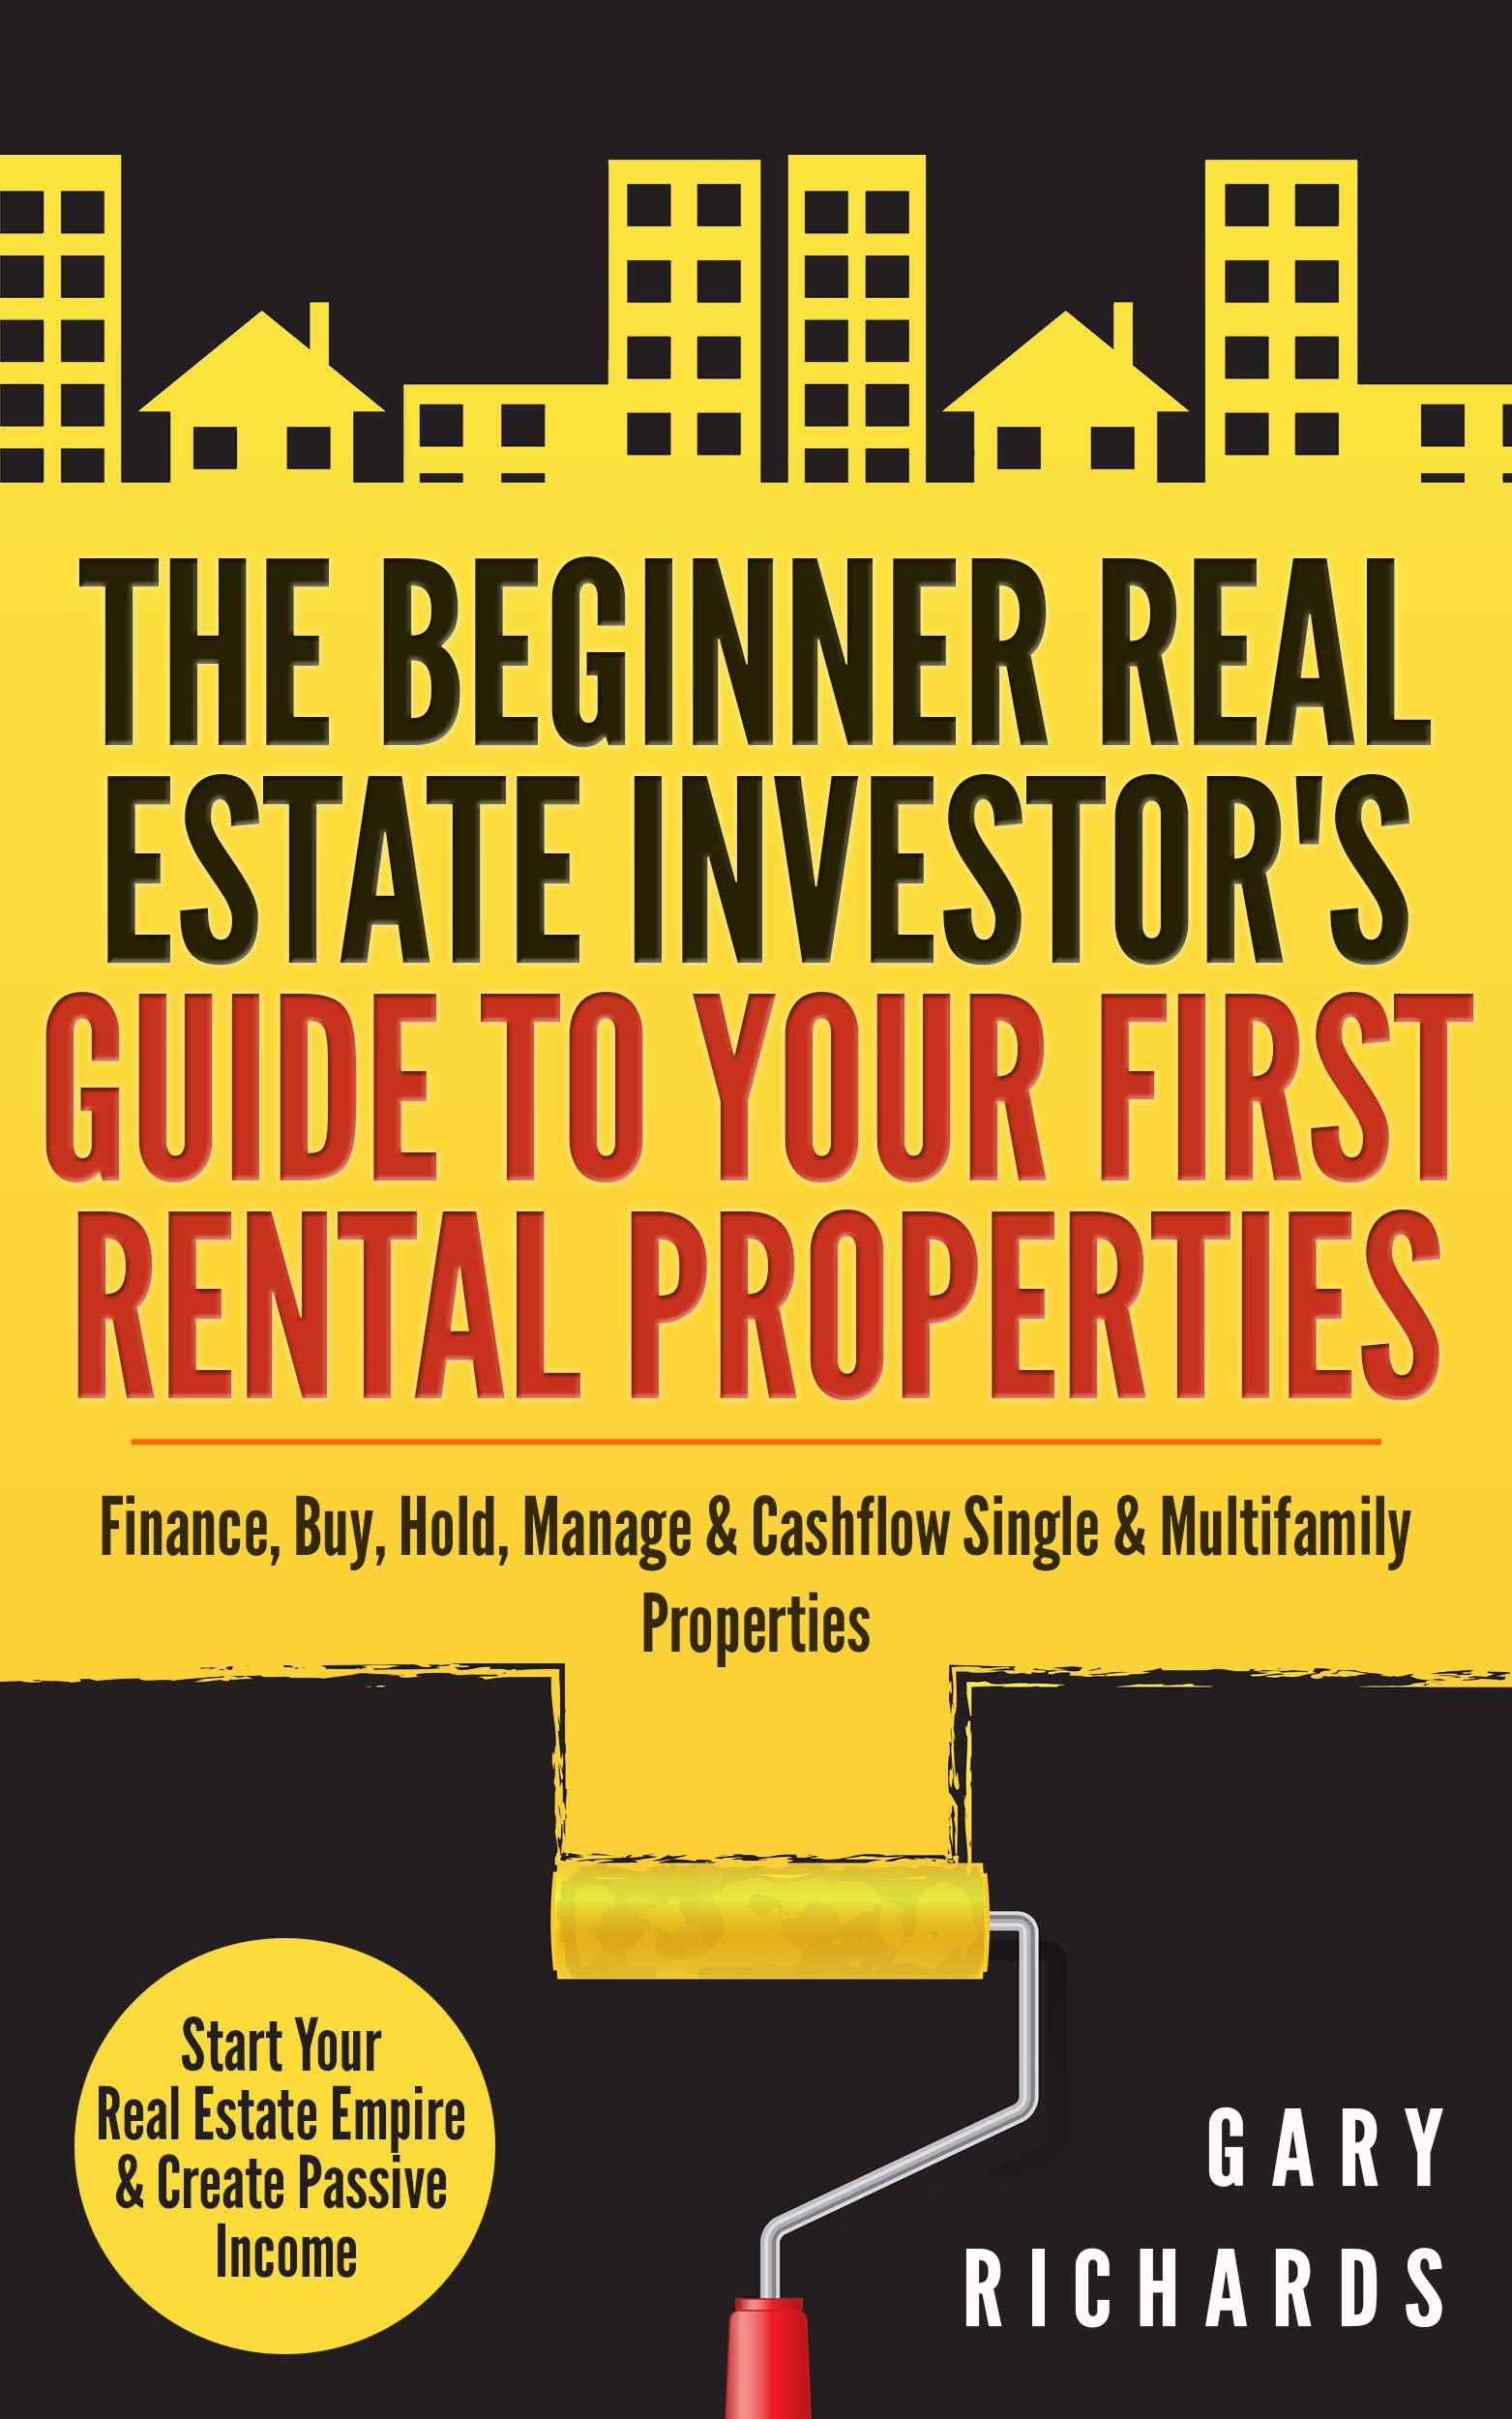 The Beginner Real Estate Investor's Guide To Your First Rental Properties  Start Your Real Estate Empire And Create Passive Income. Finance Buy Hold Manage ... And Multifamily Properties  English Edition